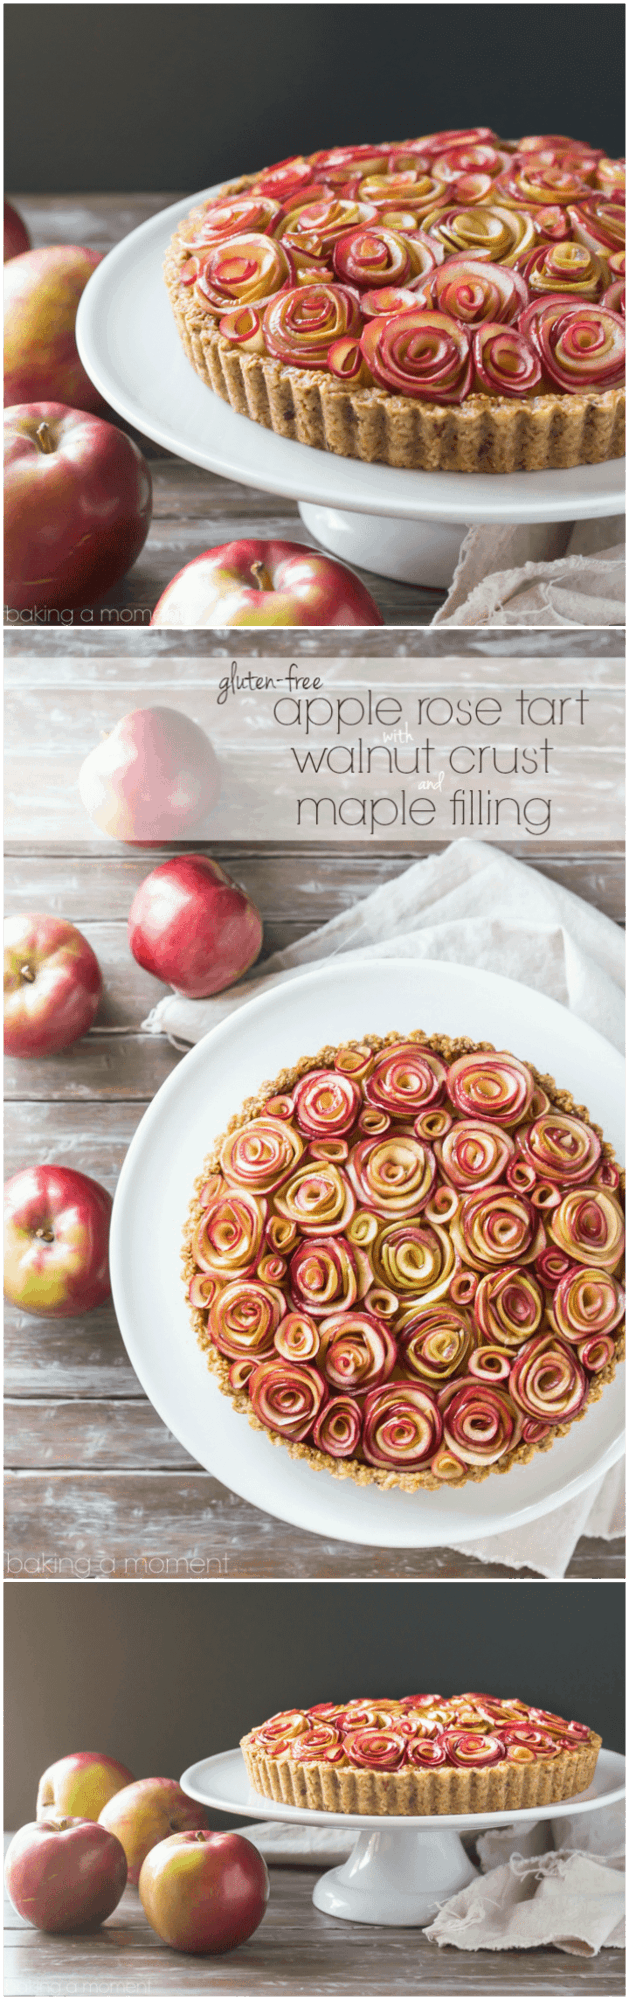 Your guests will be wowed by this gorgeous apple tart of roses, with a toasty walnut crust and a silky sweet maple custard filling.  And it's gluten-free! #apple #roses #tart #pie #holiday #baking #recipes #glutenfree